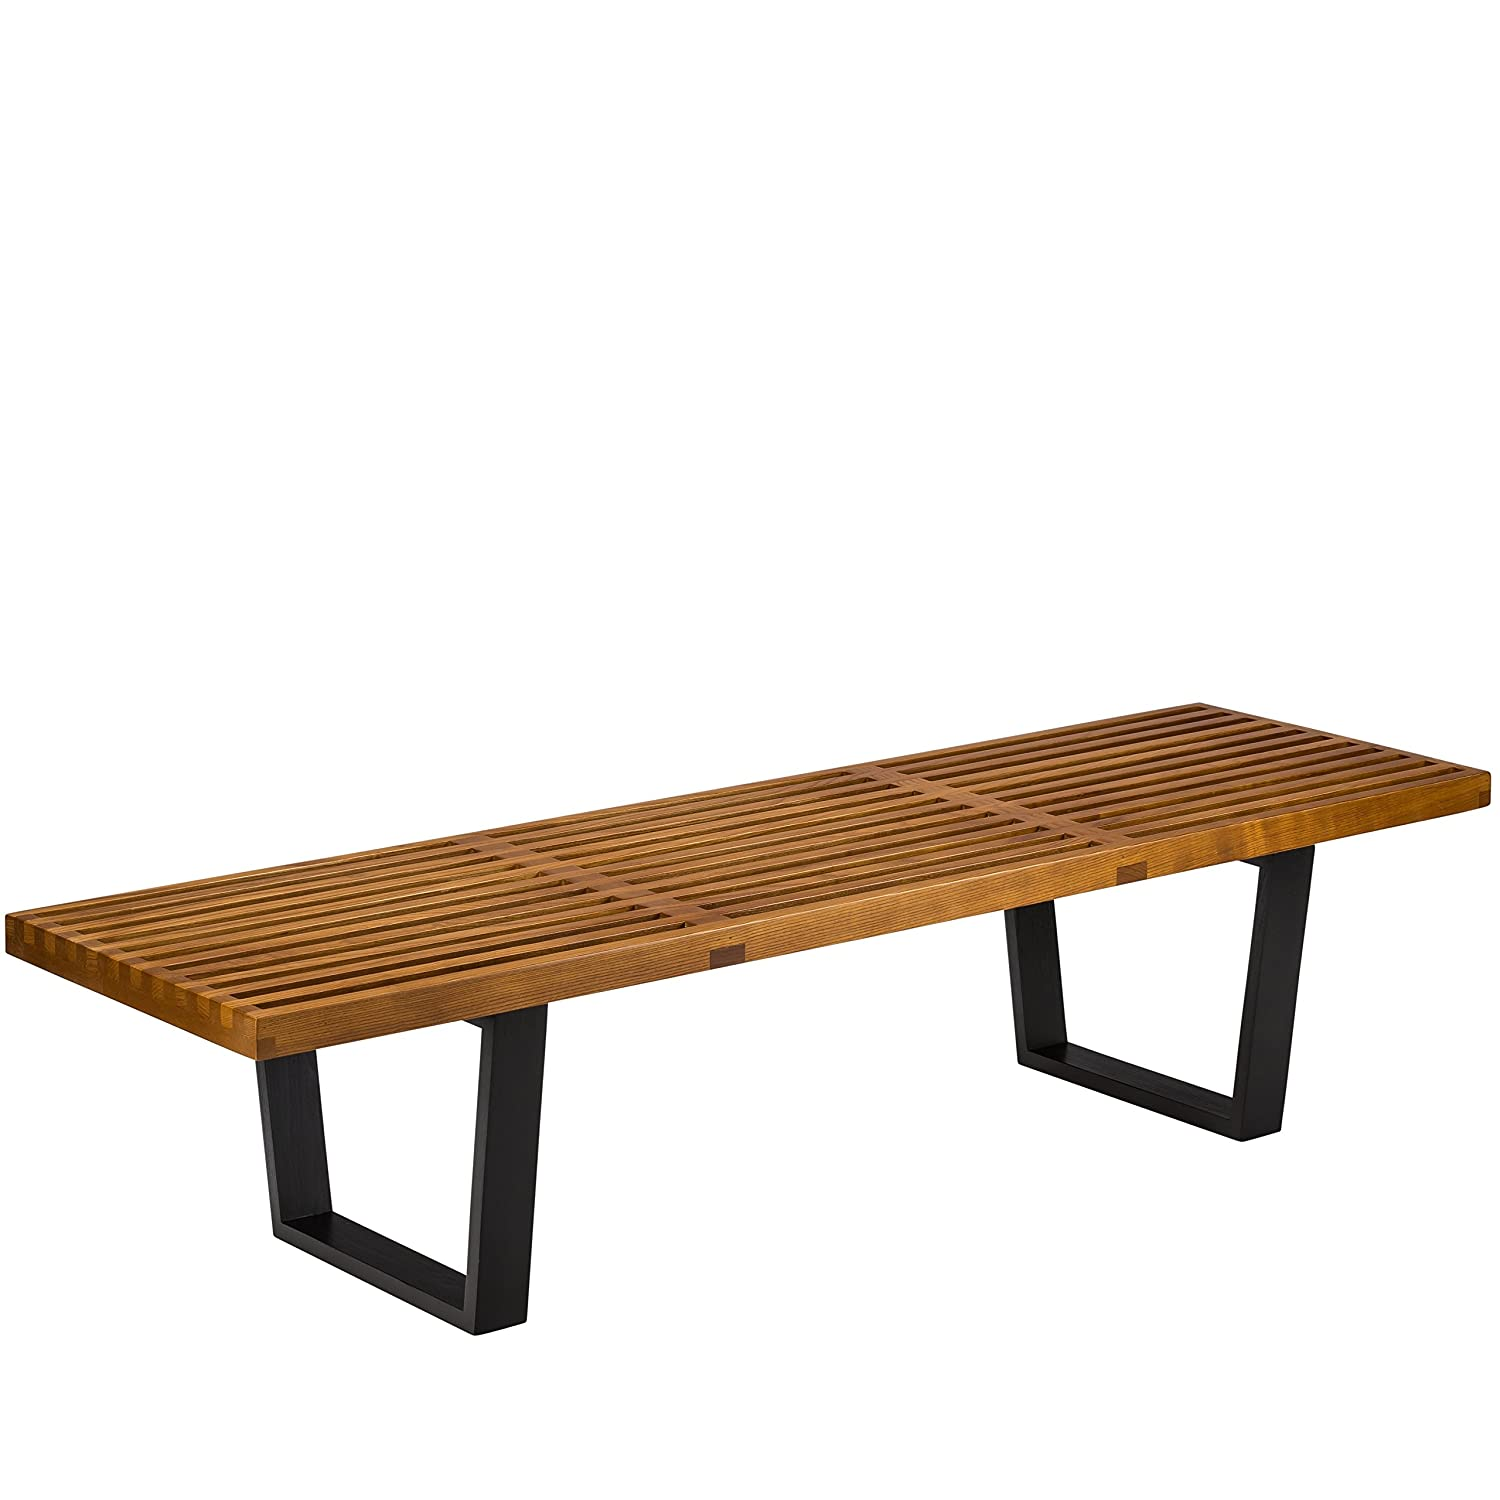 amazoncom  poly and bark george nelson platform style bench   - amazoncom  poly and bark george nelson platform style bench ' walnut table benches